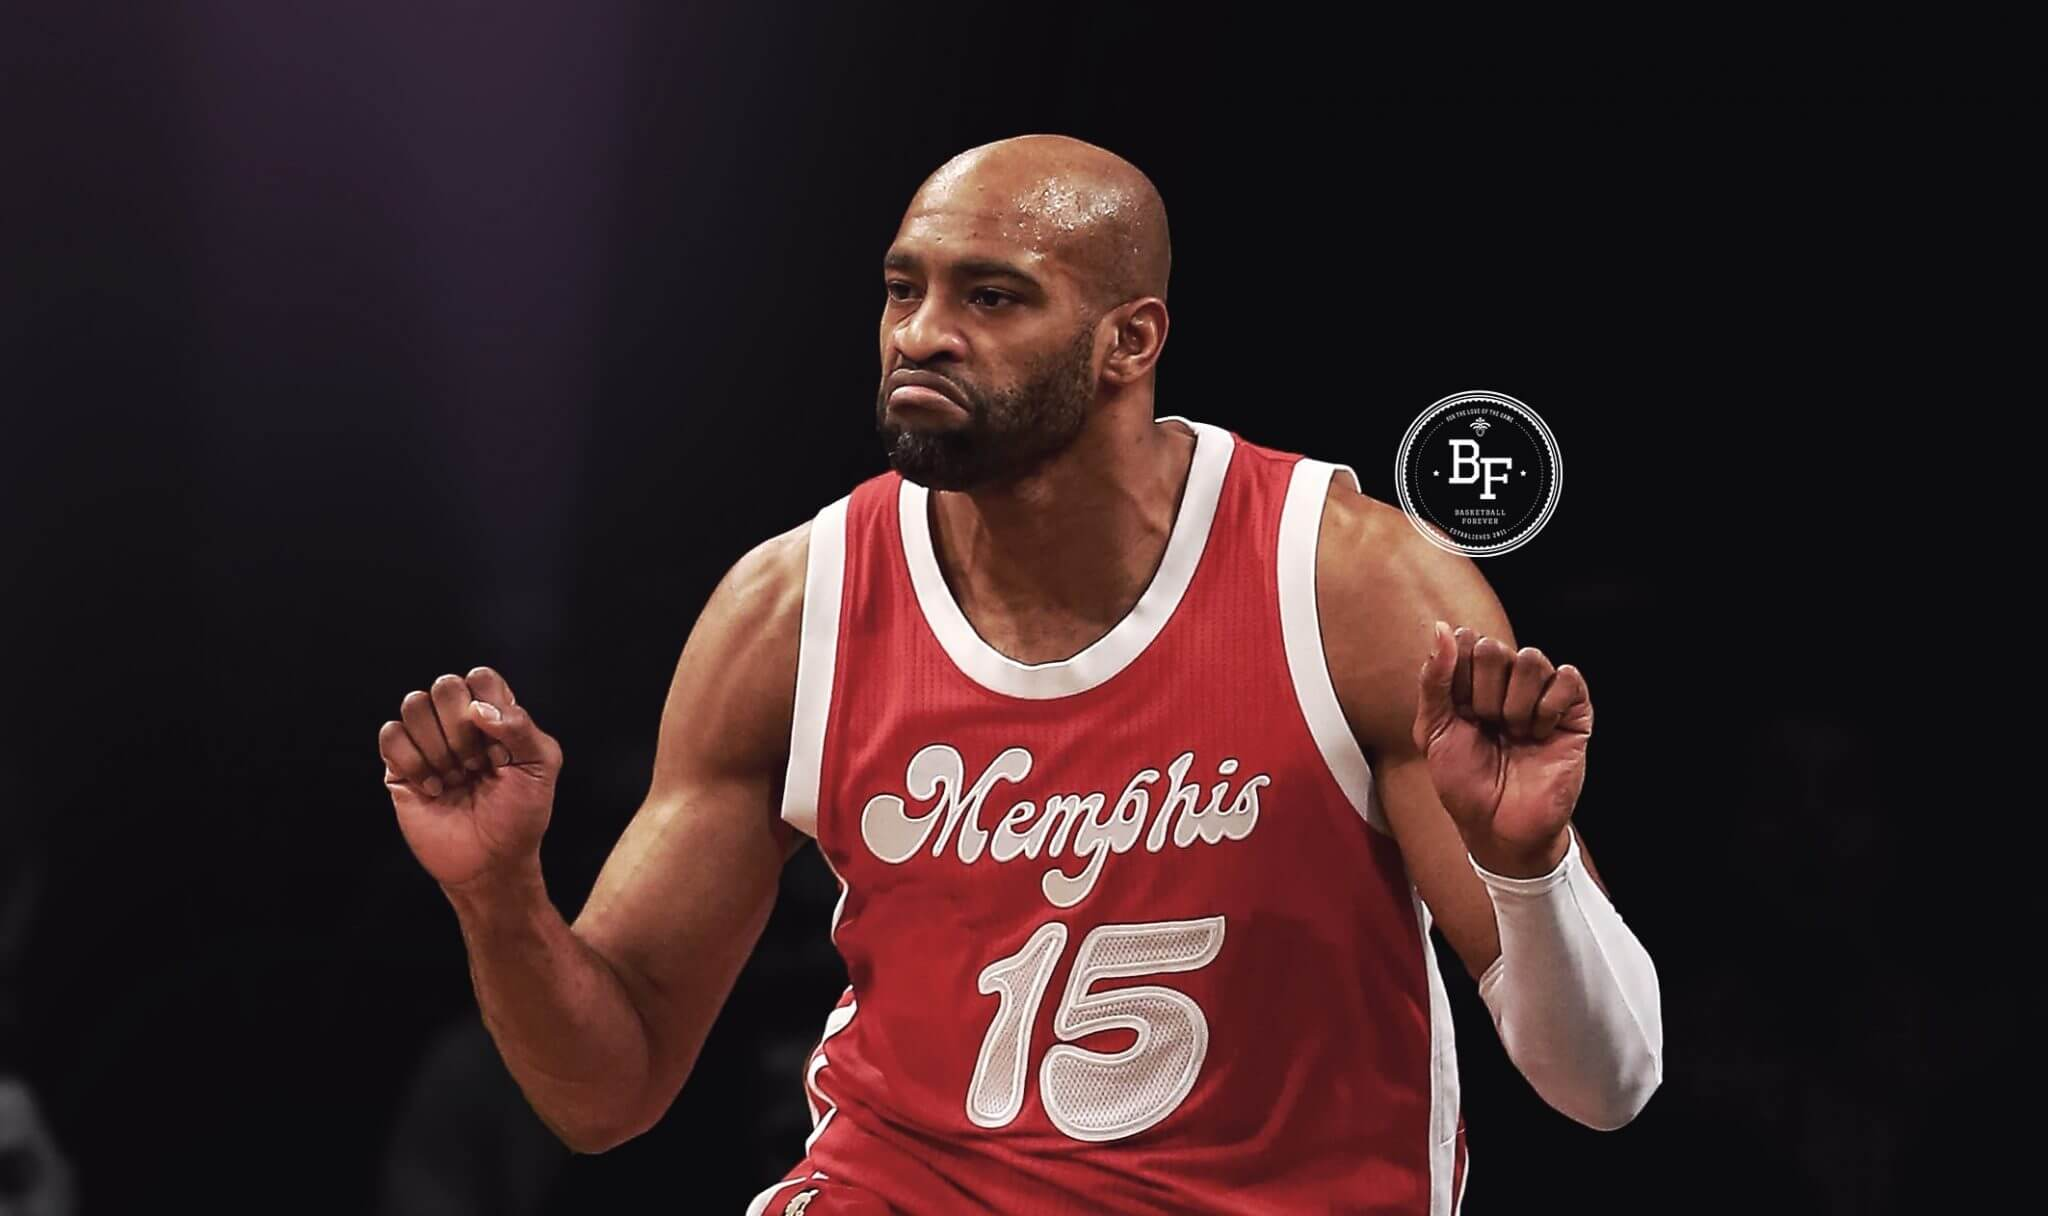 Vince Carter Says He Could Compete in 2017 Dunk Contest